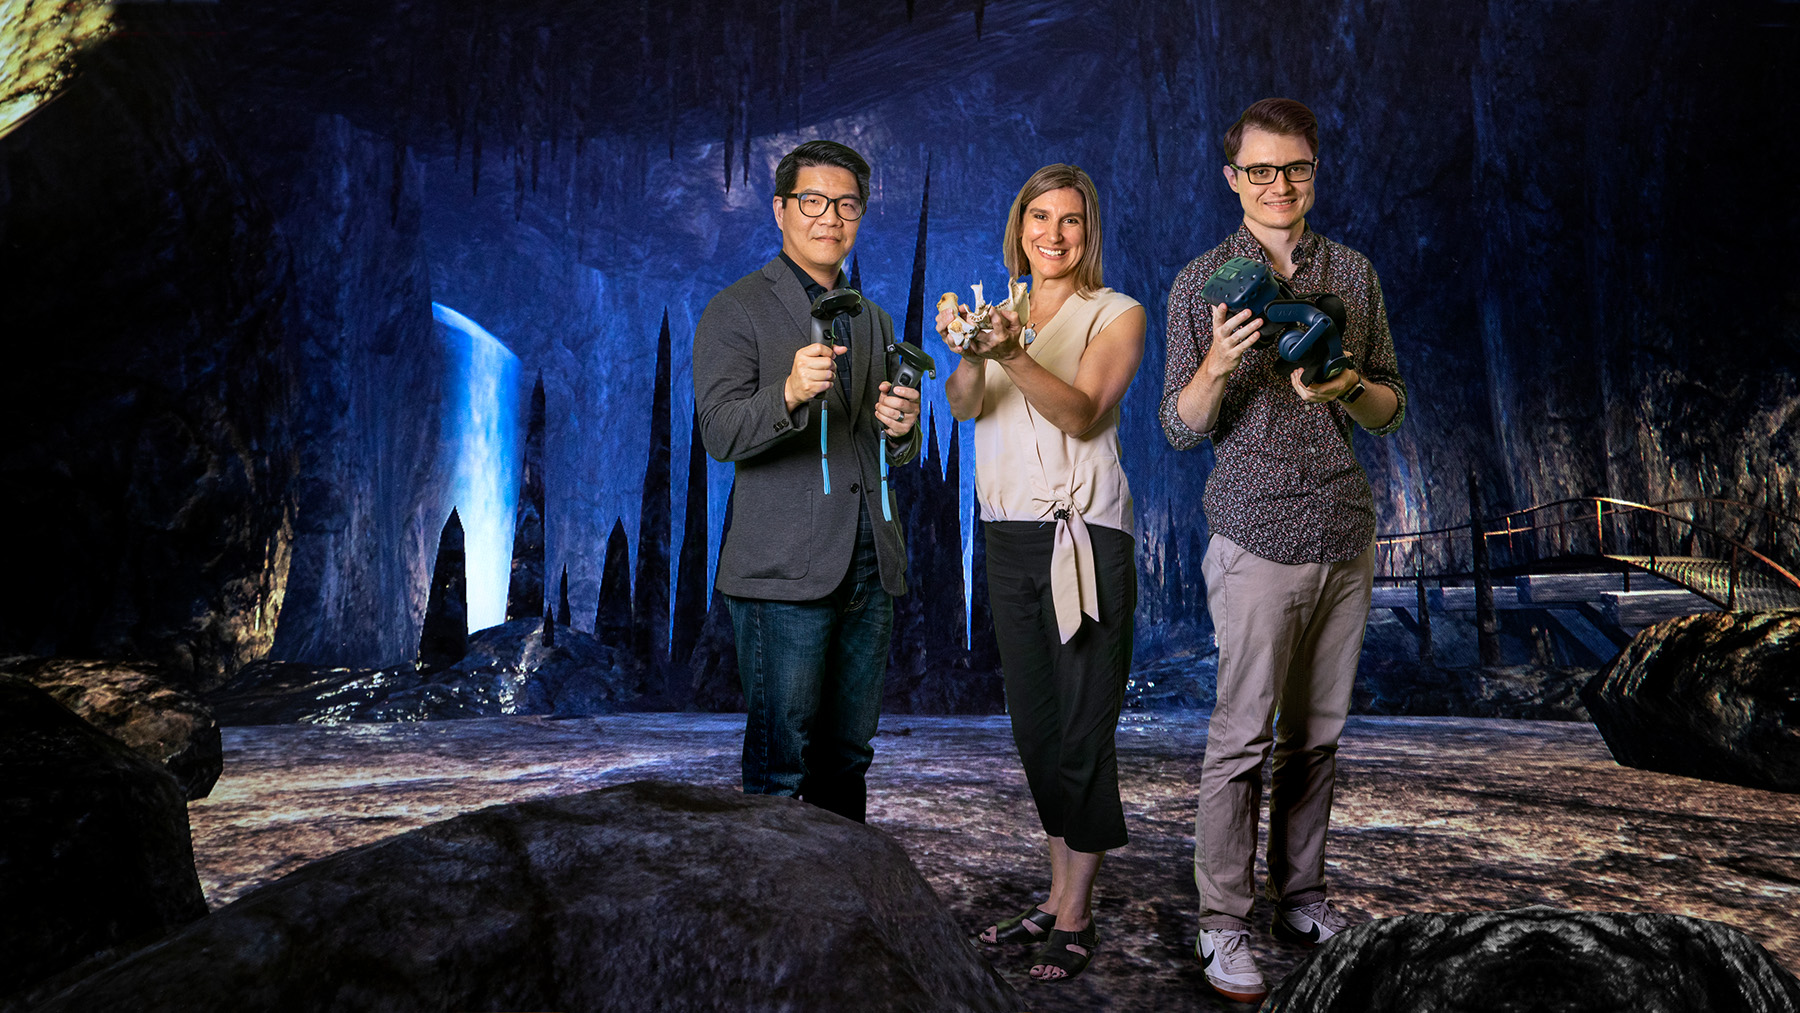 Anthropology professor Laura Shackelford; education professor David Huang; and graduate student Cameron Merrill have created Virtual Archaeology. Photos by Fred Zwicky